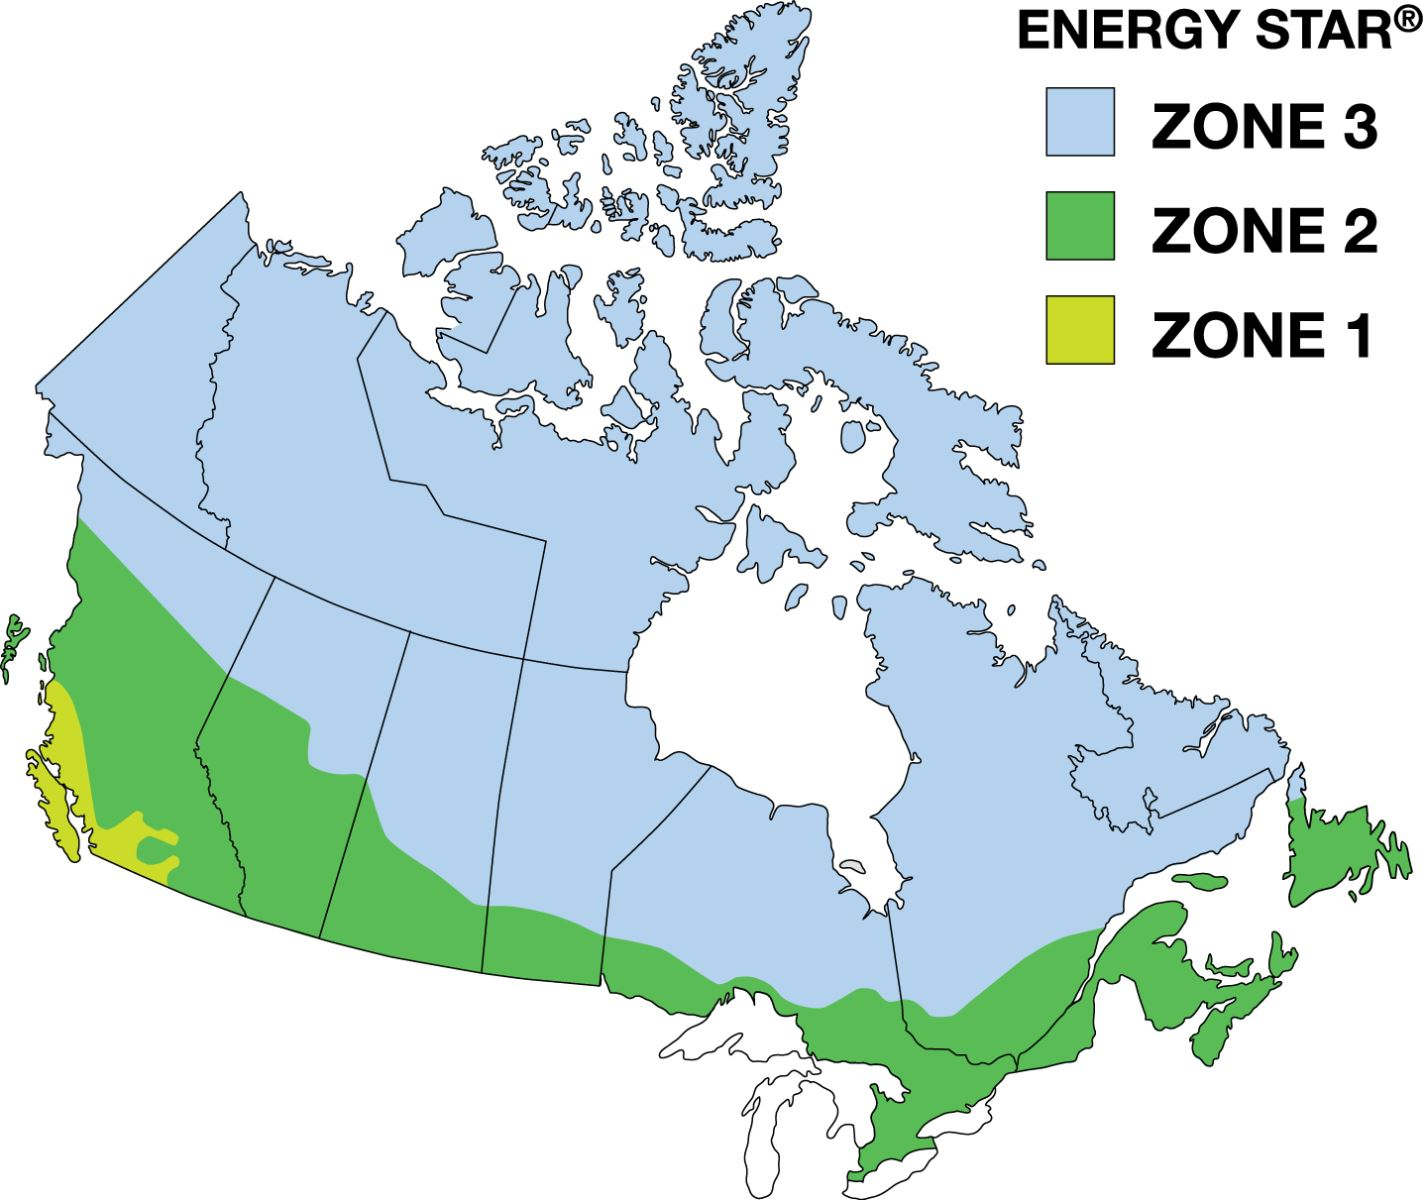 Carte zones ENERGY STAR